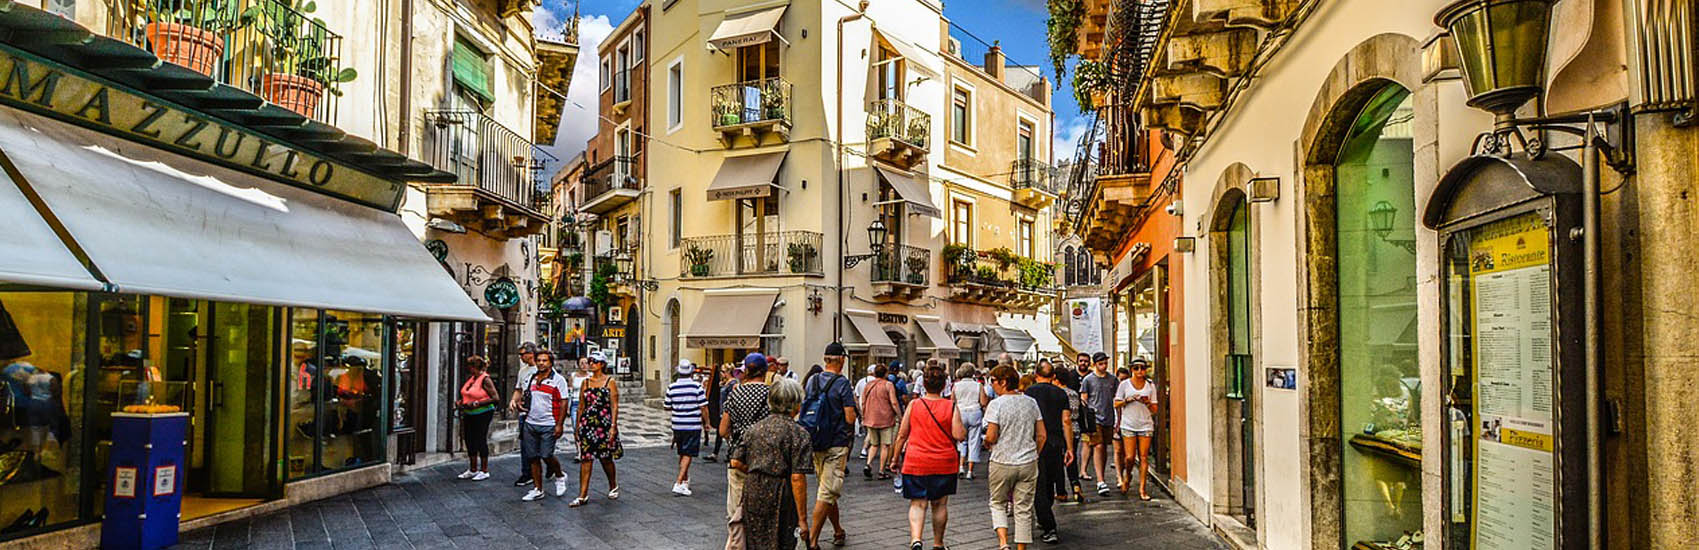 Savings to Italy with Globus Vacations! 1